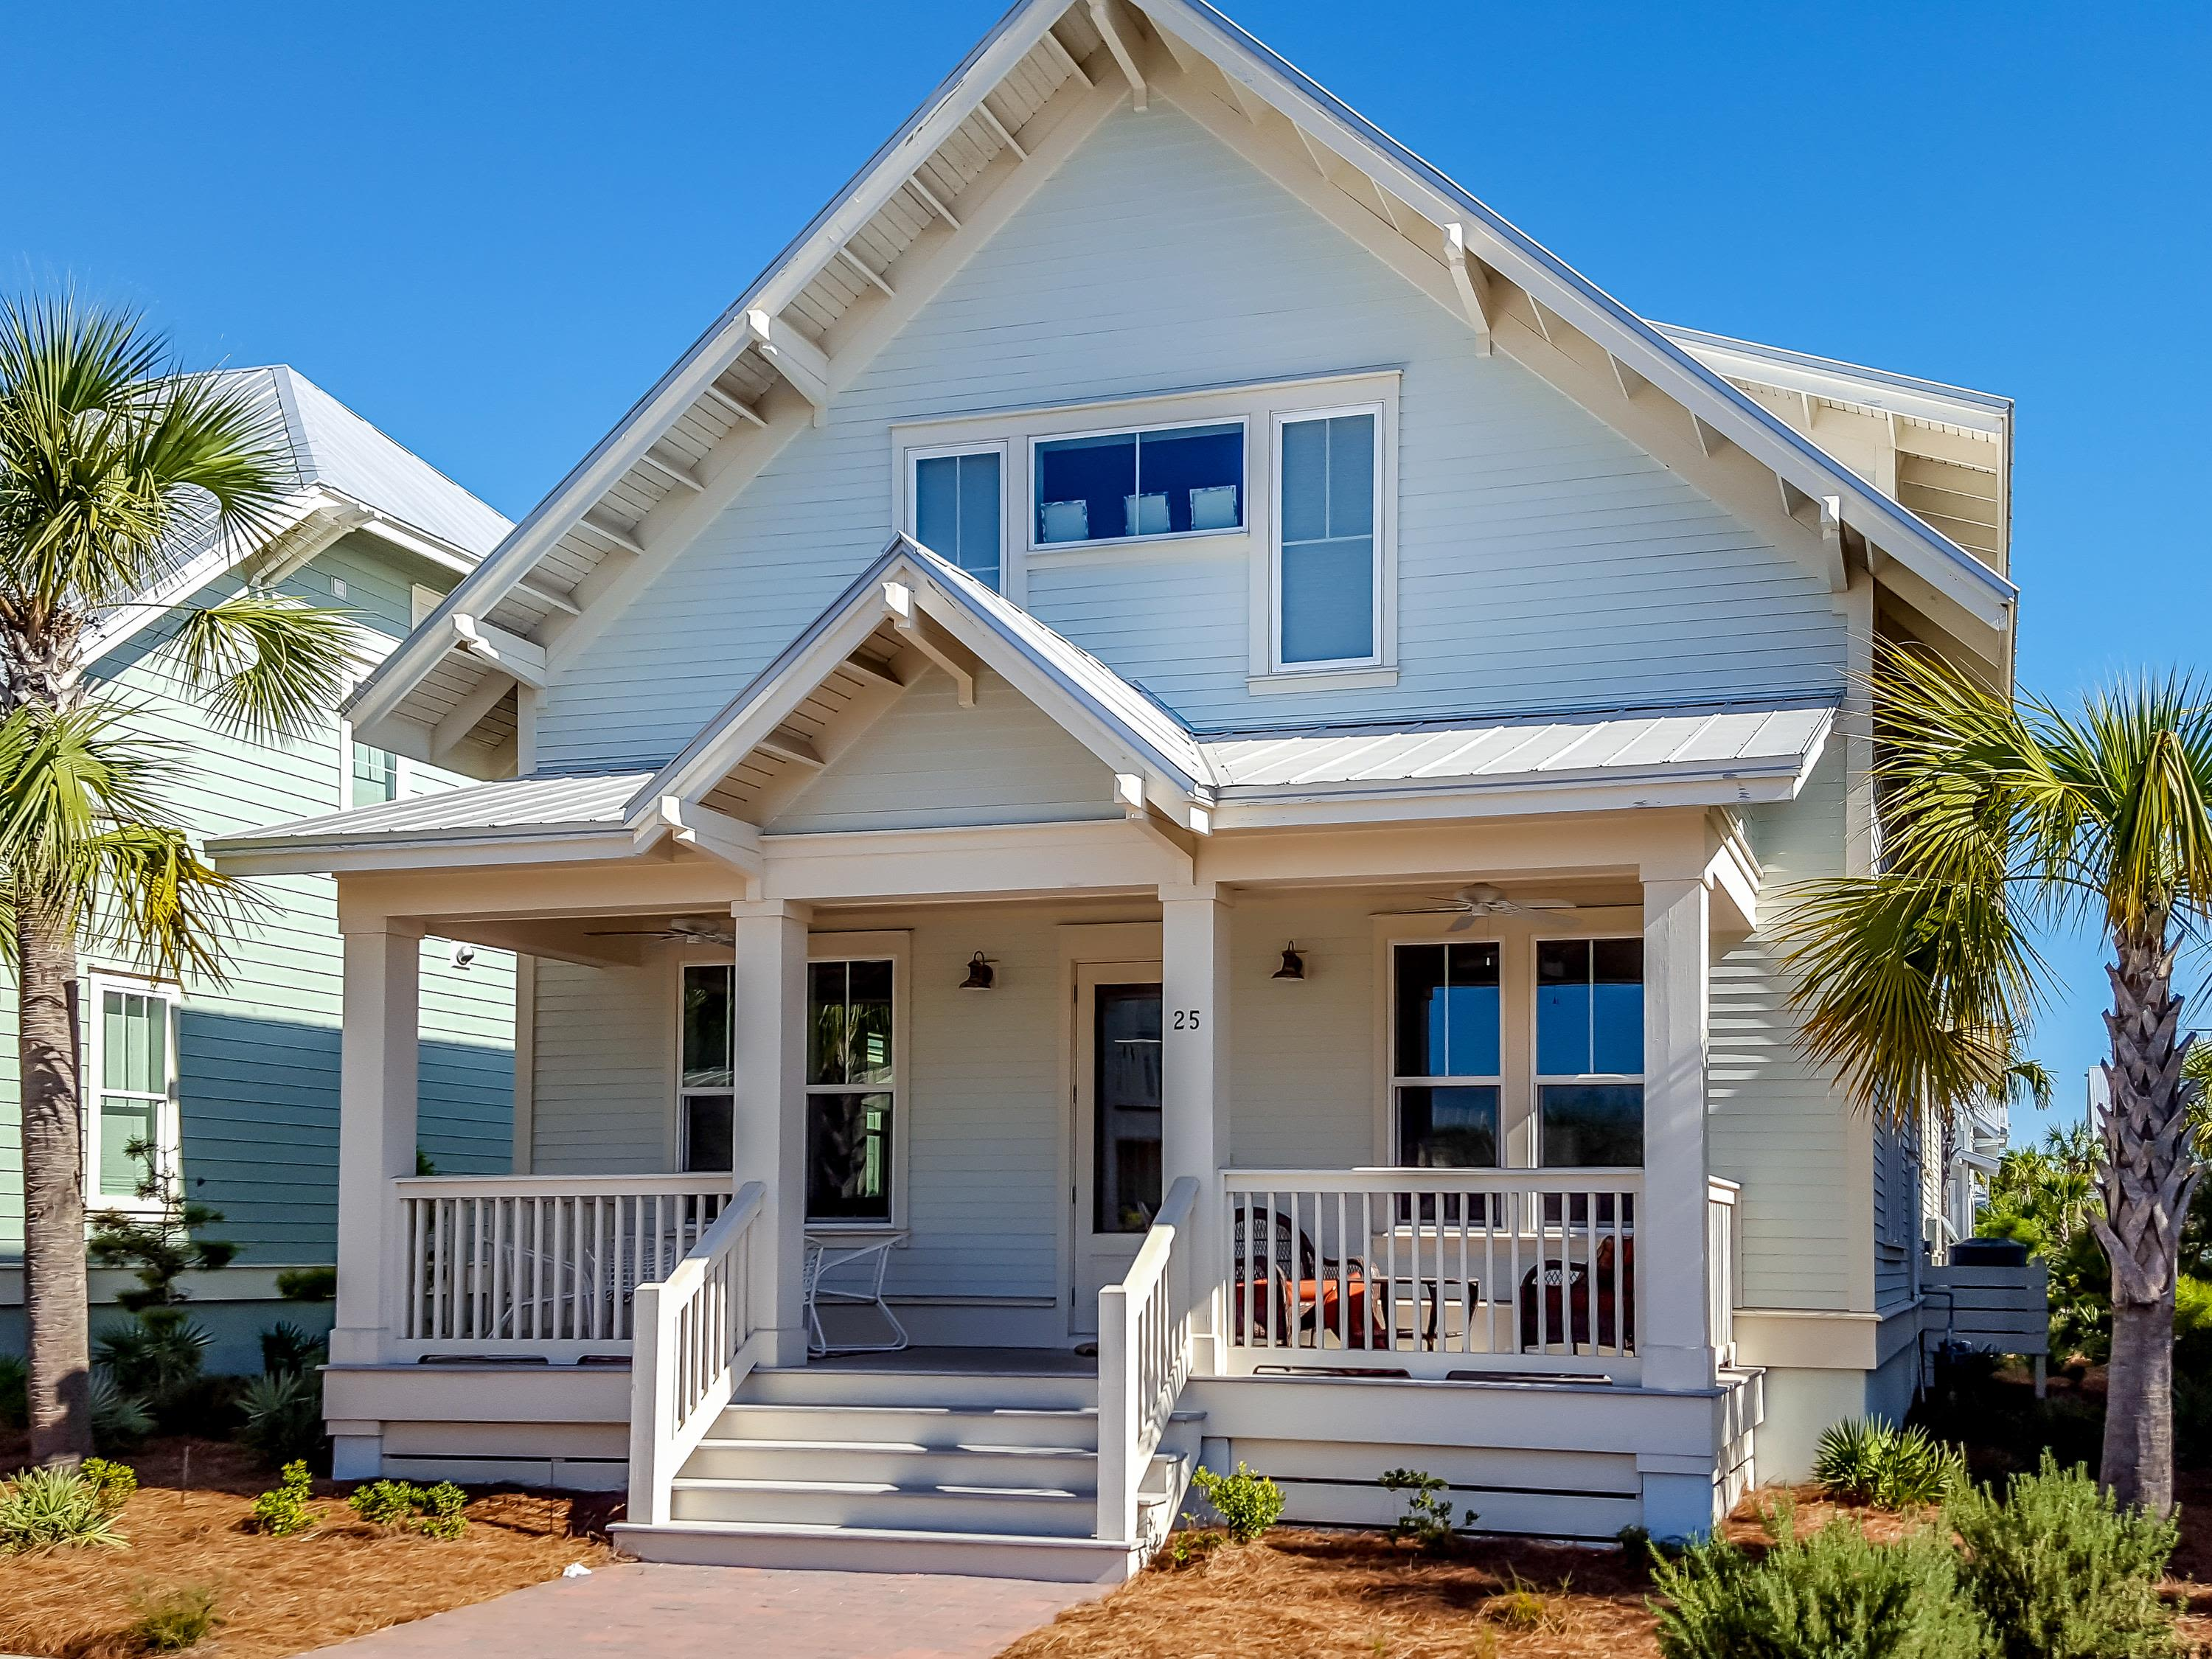 Sweet Home 30A: 5 Bedroom Vacation Home Rental Prominence ...